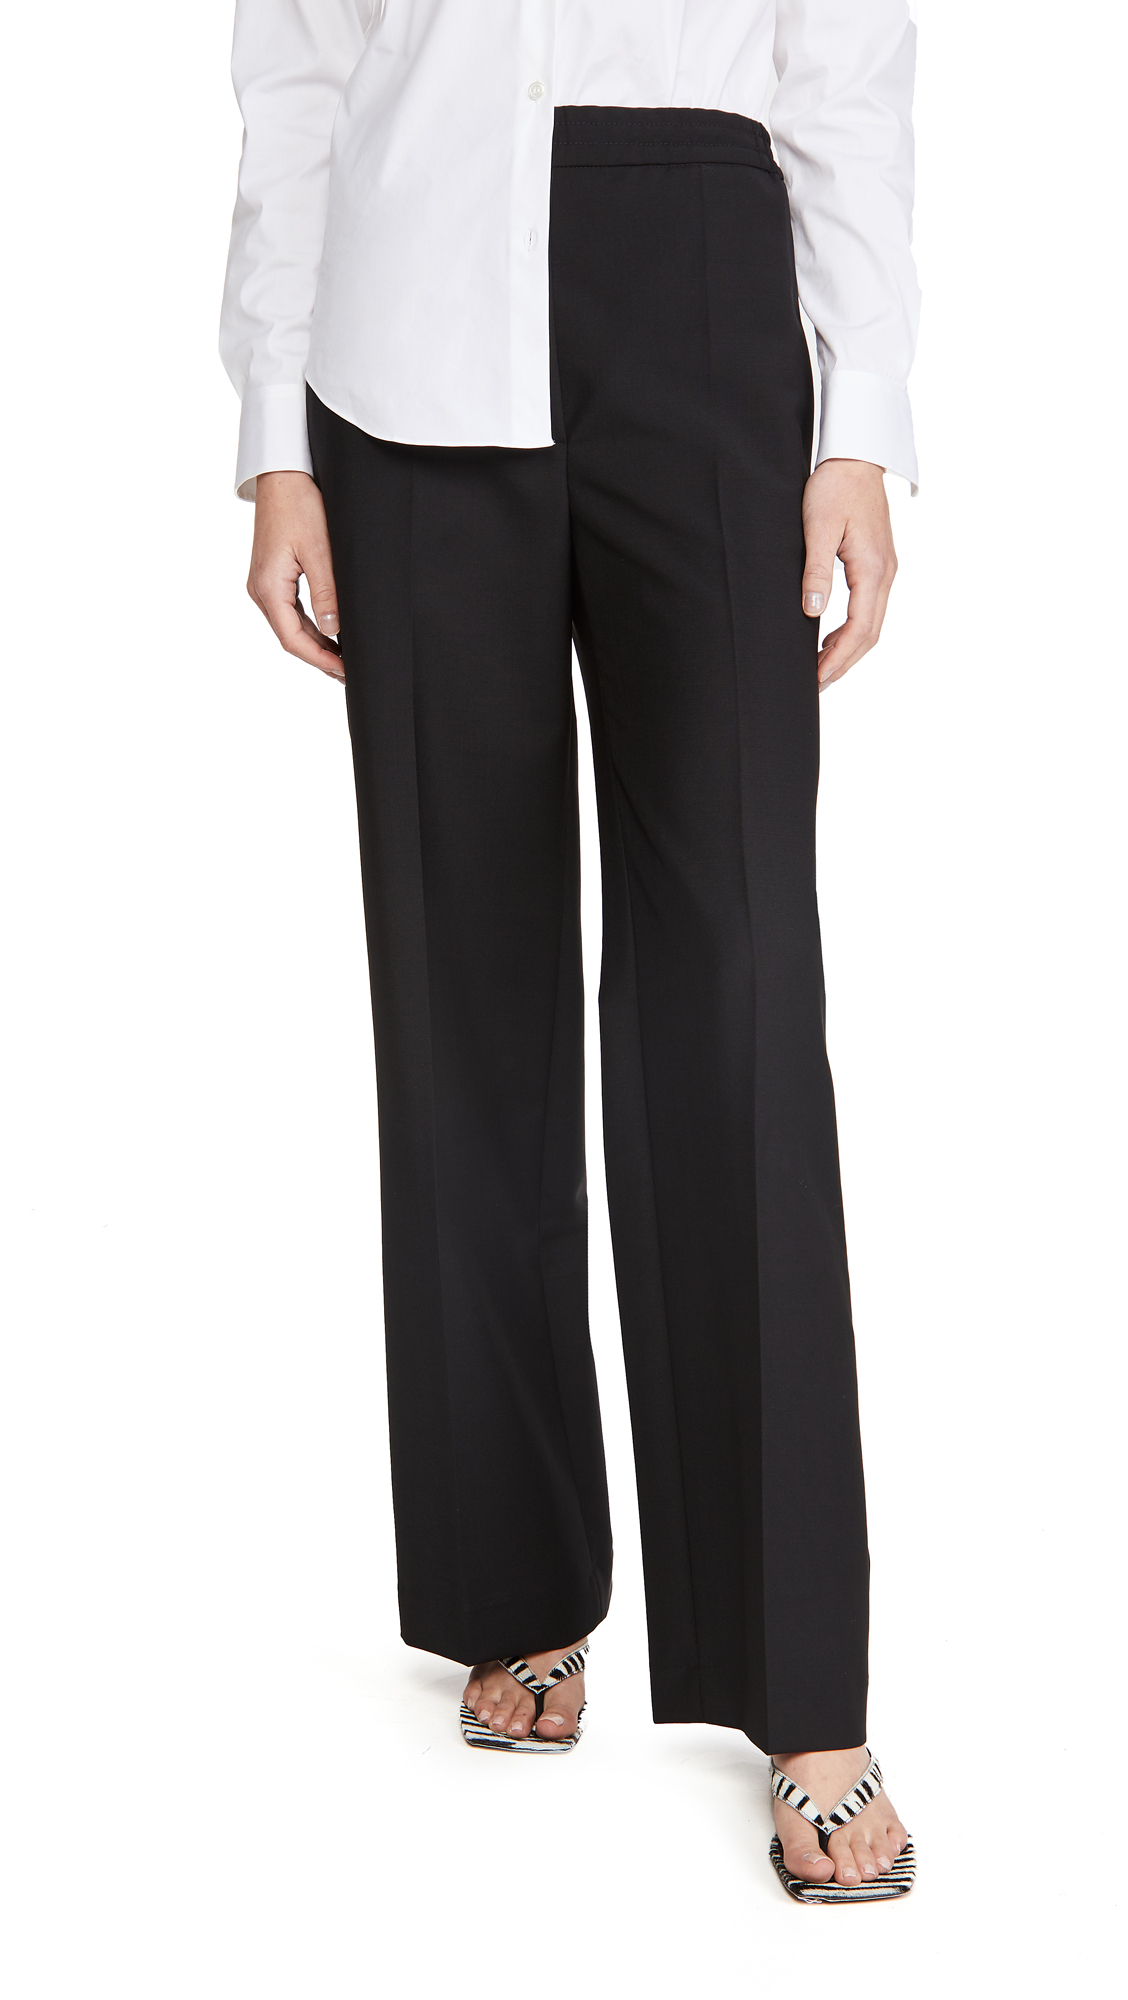 Acne Studios Paminne Wool Trousers